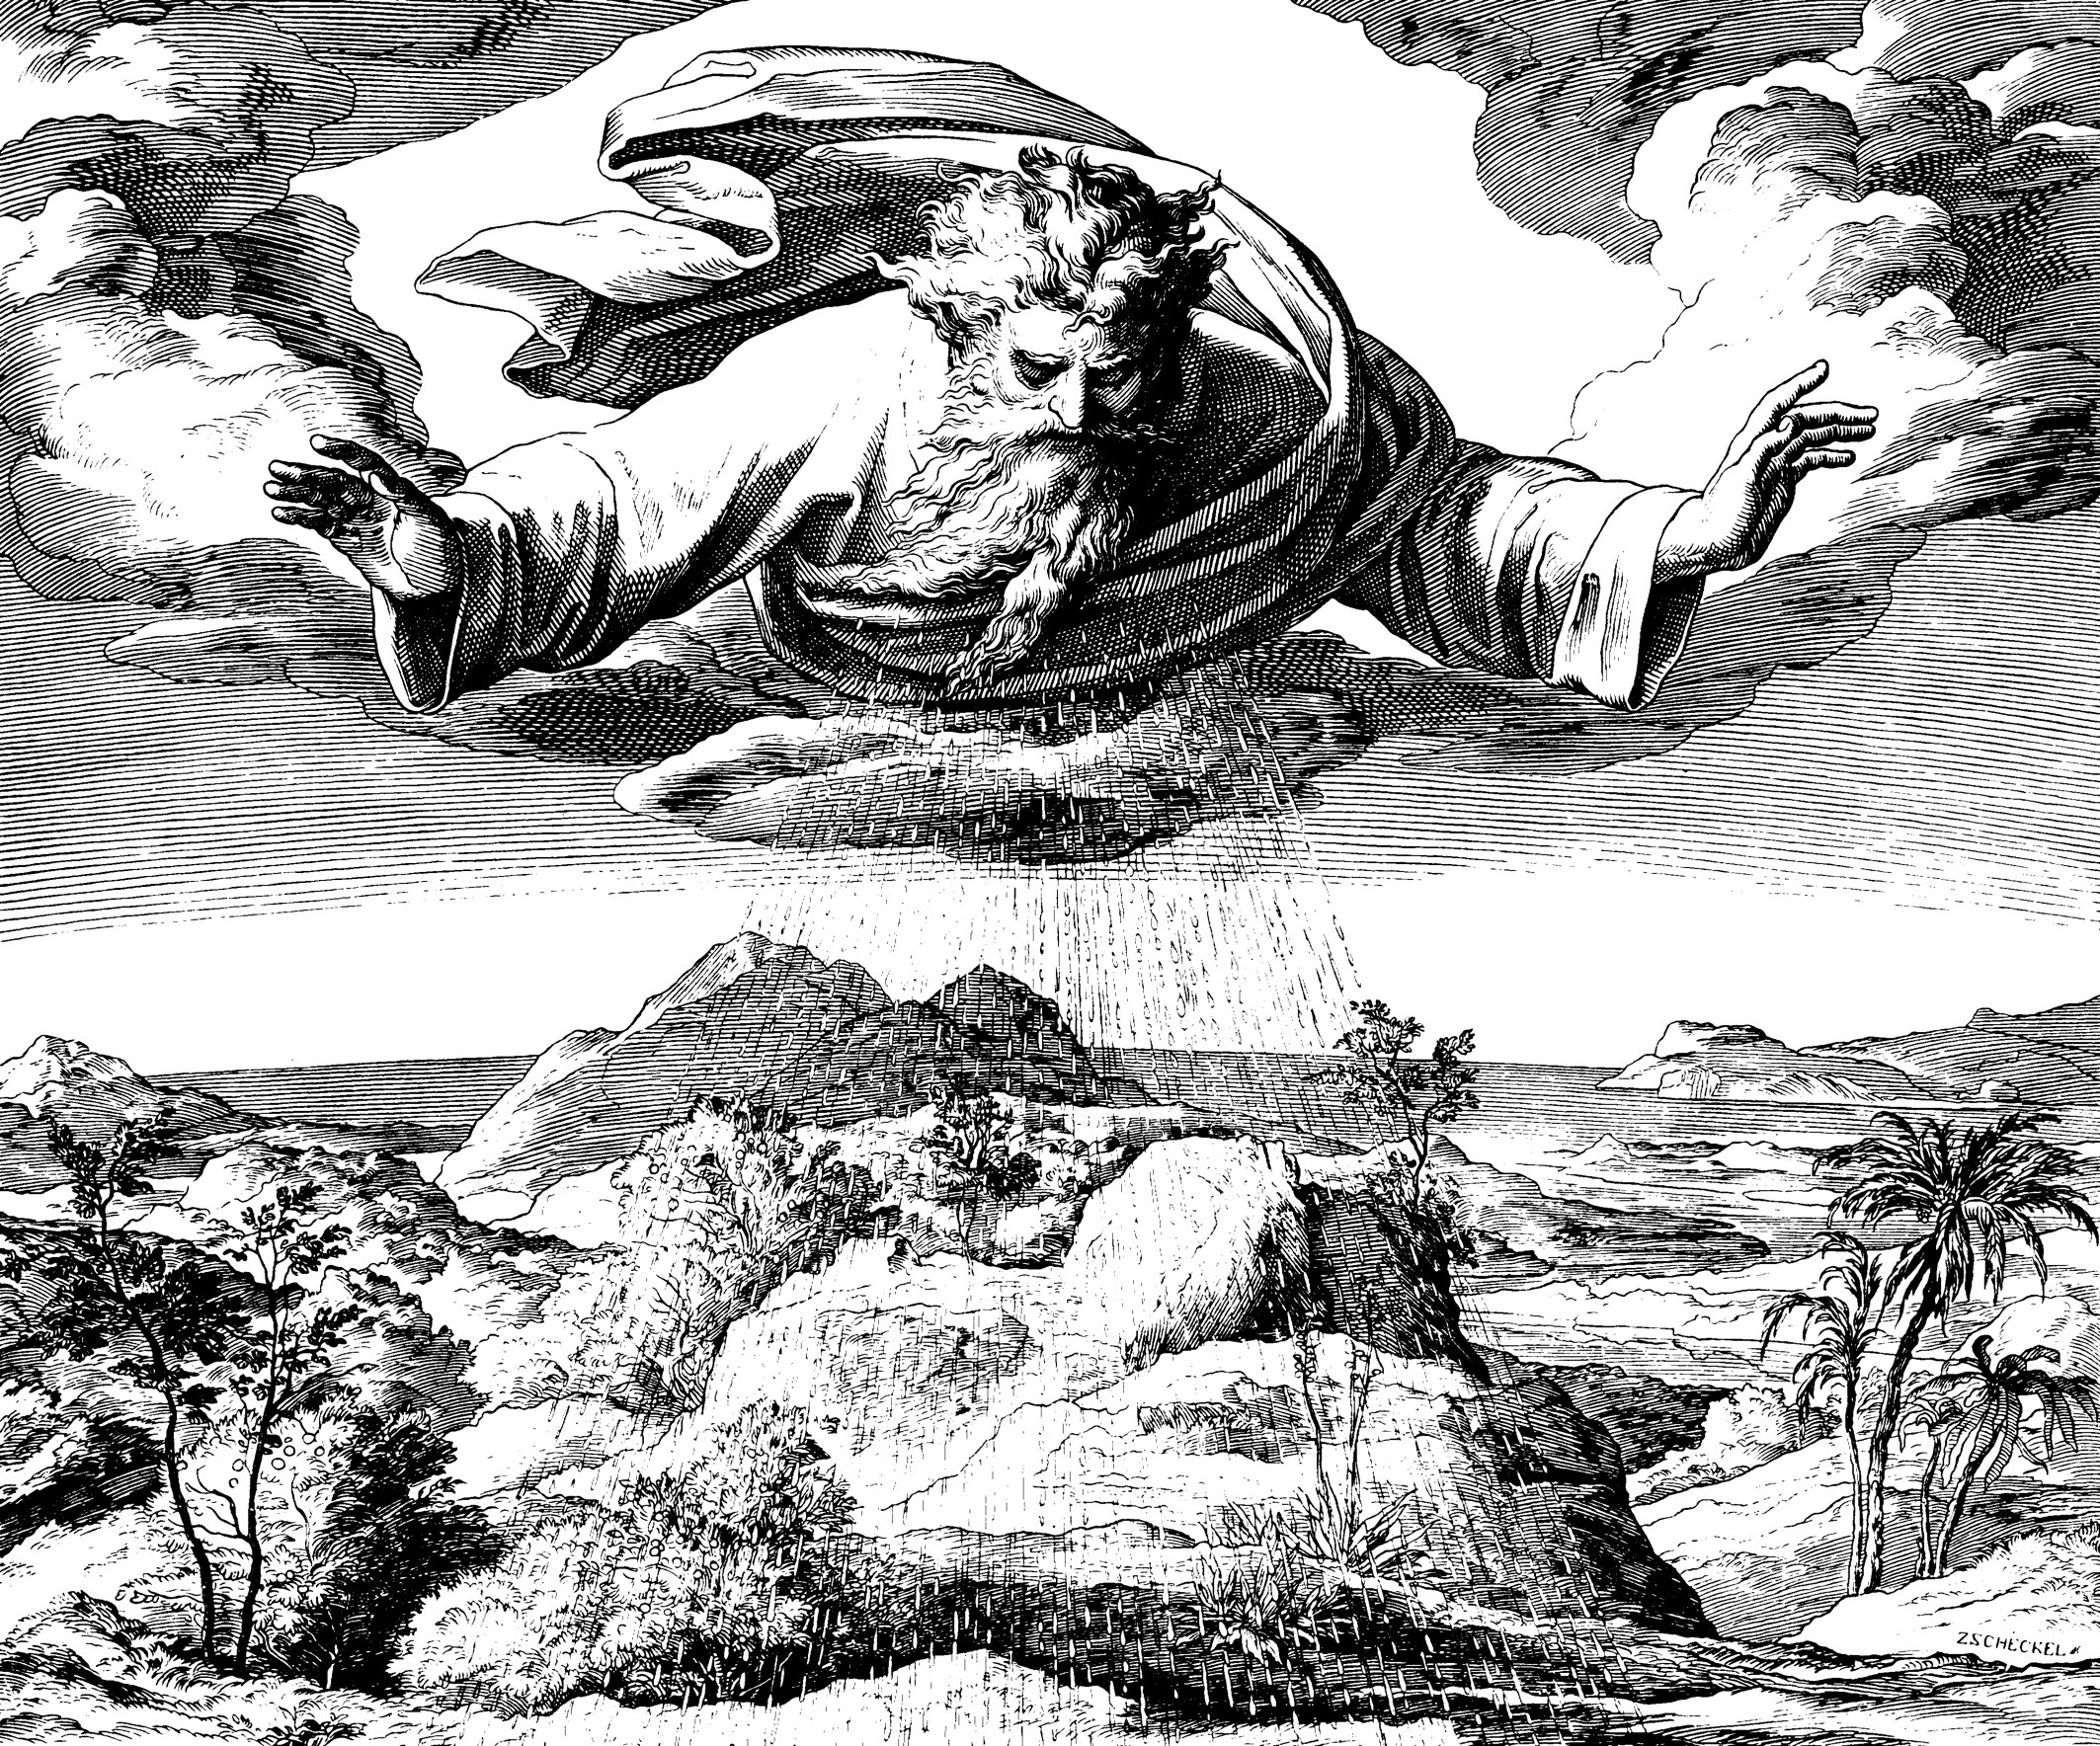 Julius Schnorr von Carolsfeld, woodcut for The Bible in Pictures (1860)